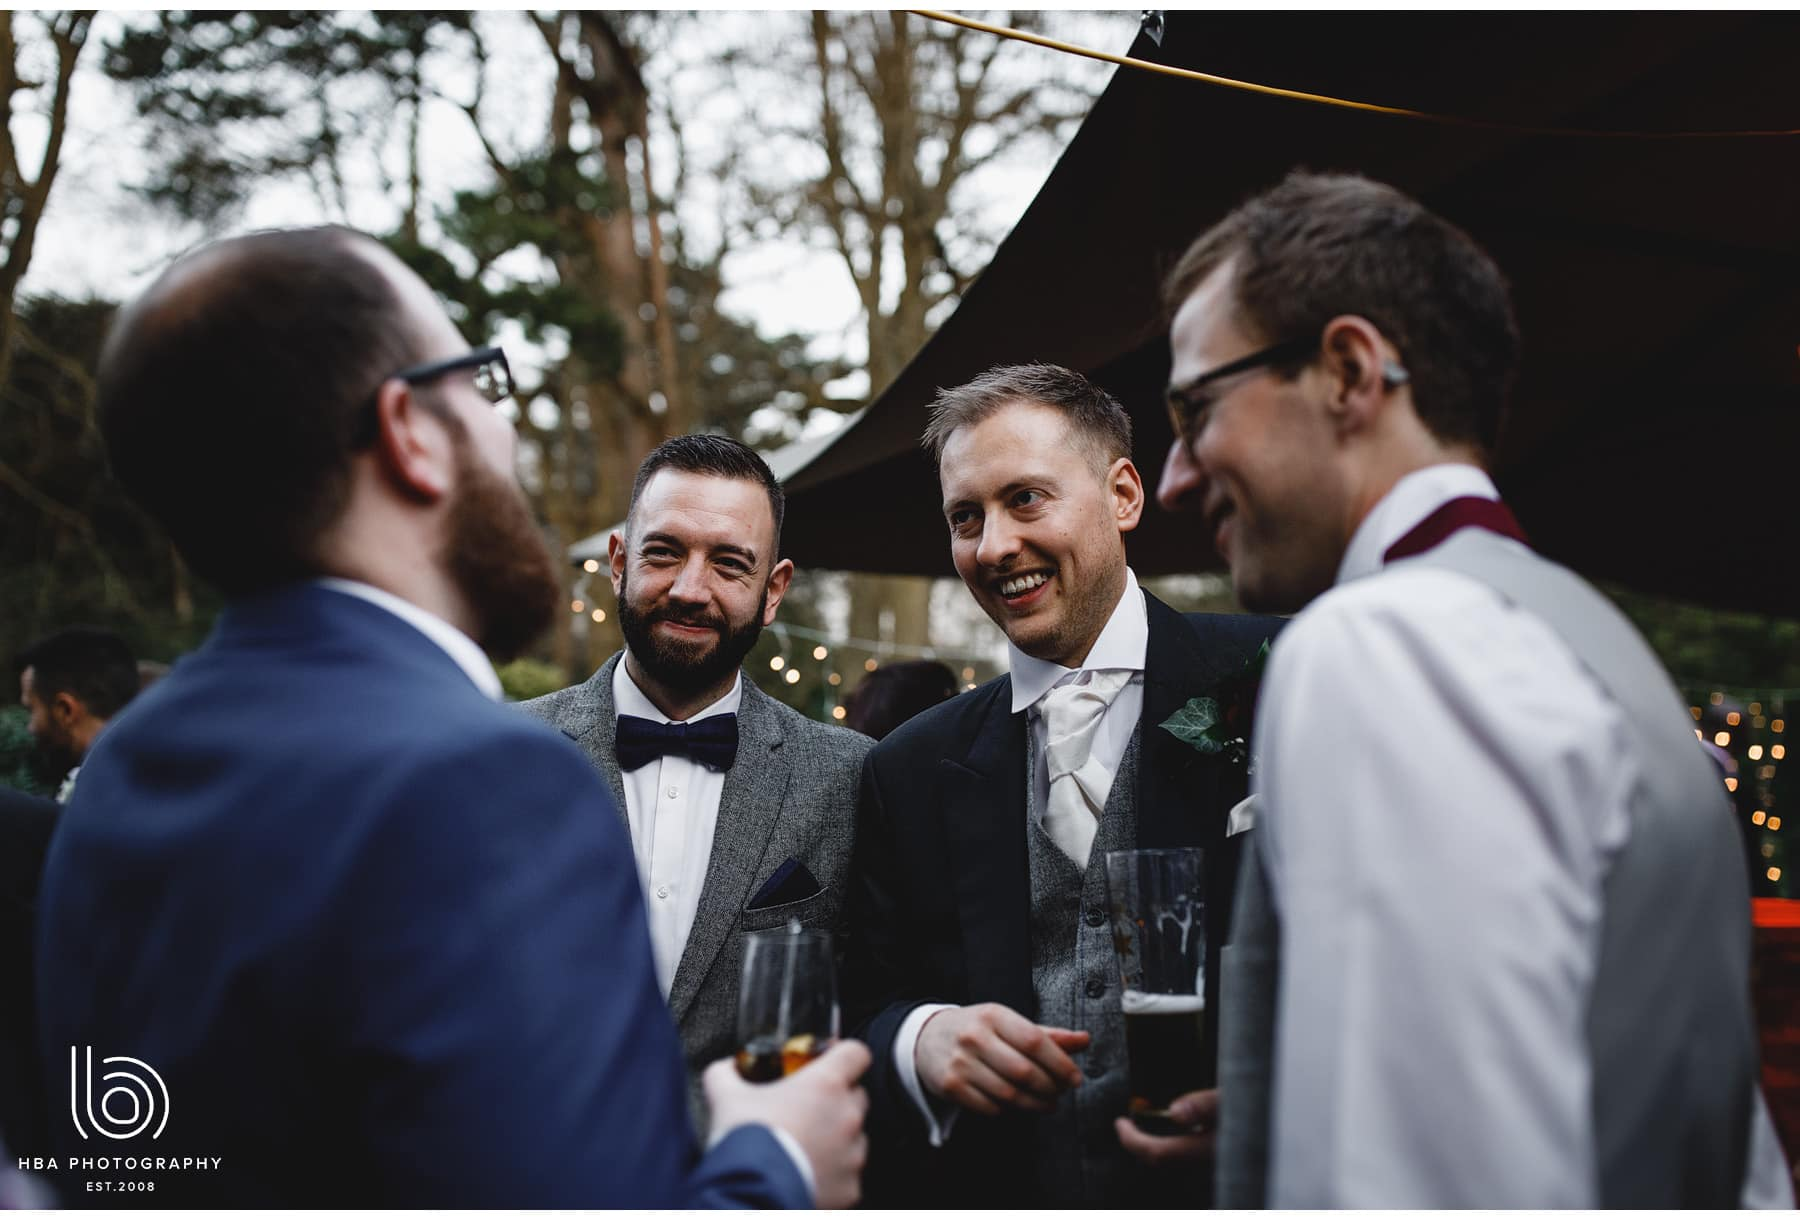 the groom laughing with friends